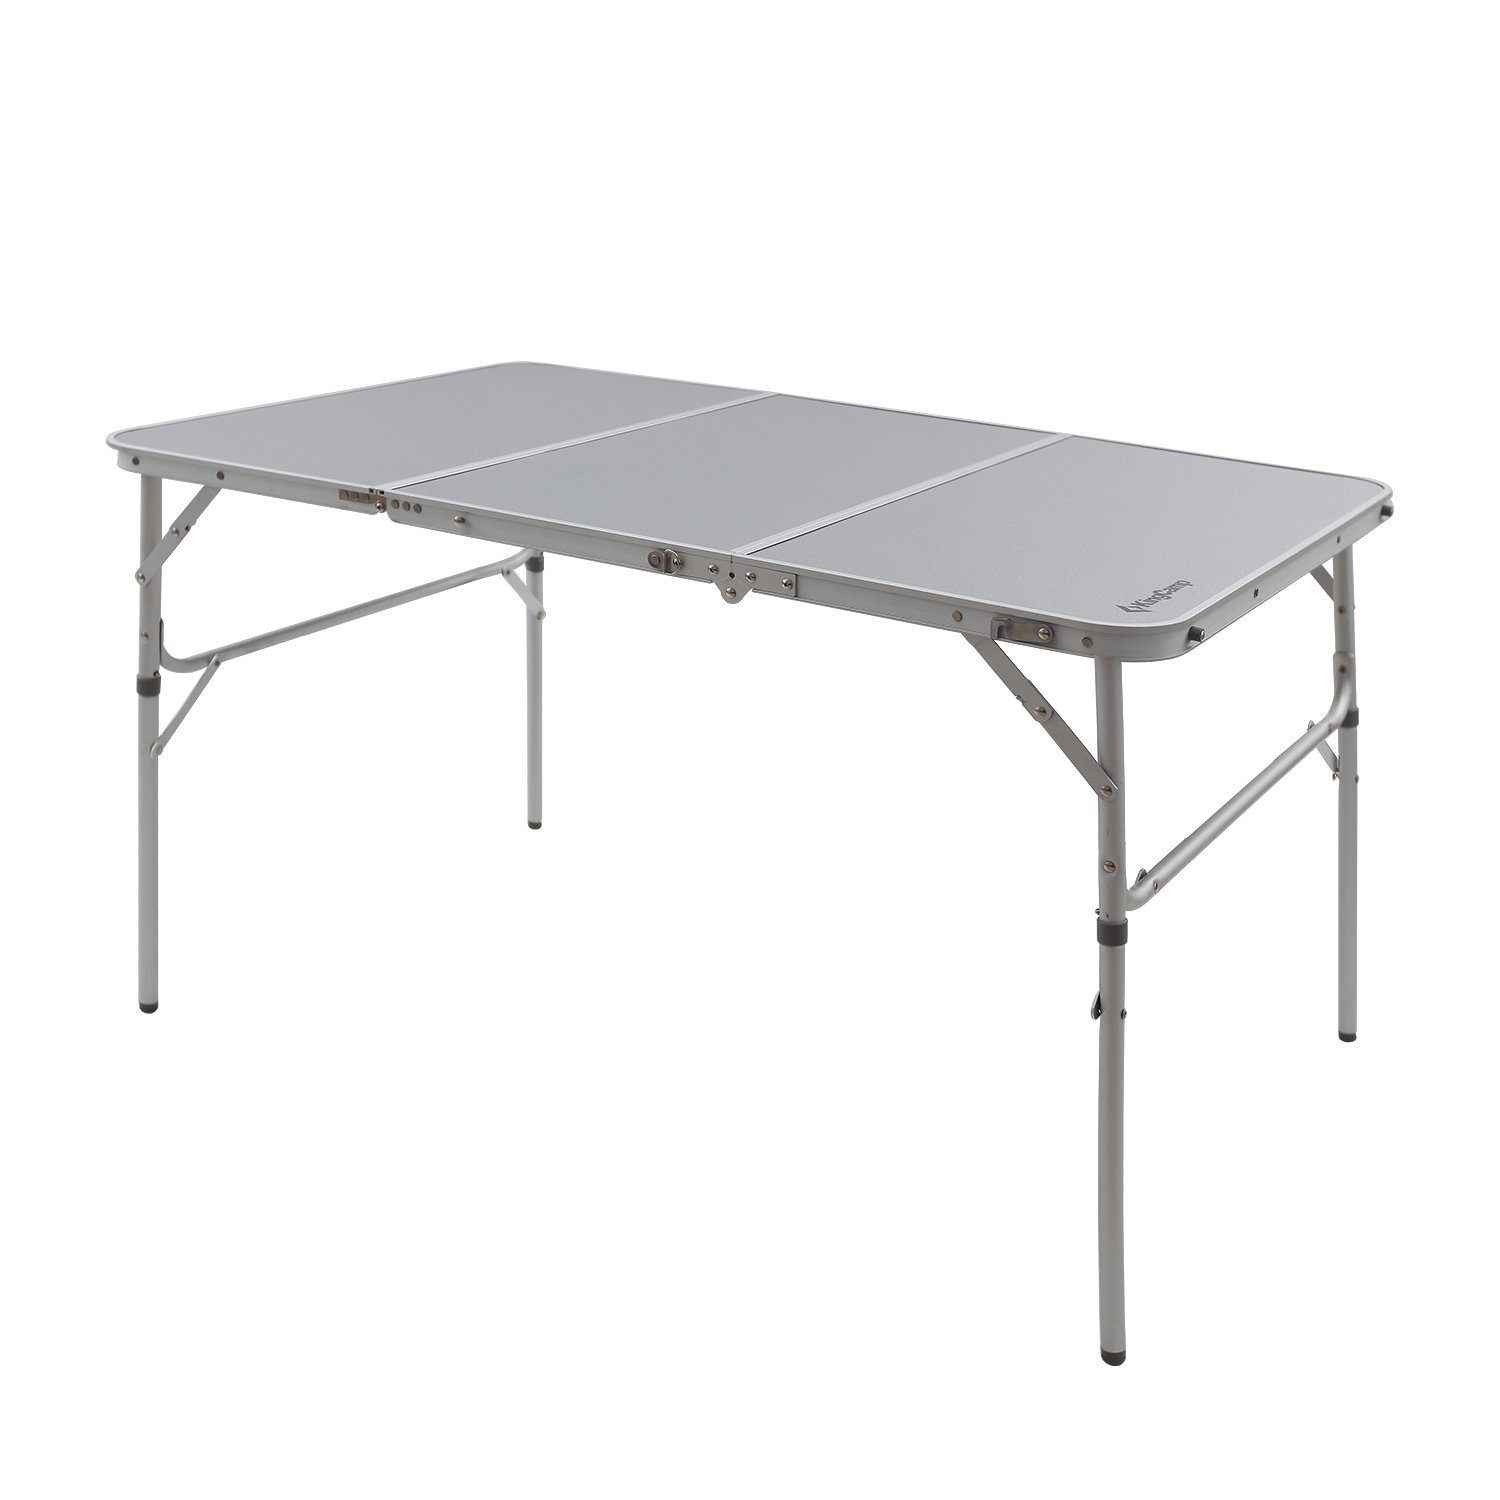 KingCamp Aluminum Alloy 3-Fold Camp Table with Carry Bag Adjustable Height Light Weight Collapsible Foldable Portable Sturdy Compact Storage for Camping, Outdoor, Picnic, Vacation, Call Out Length